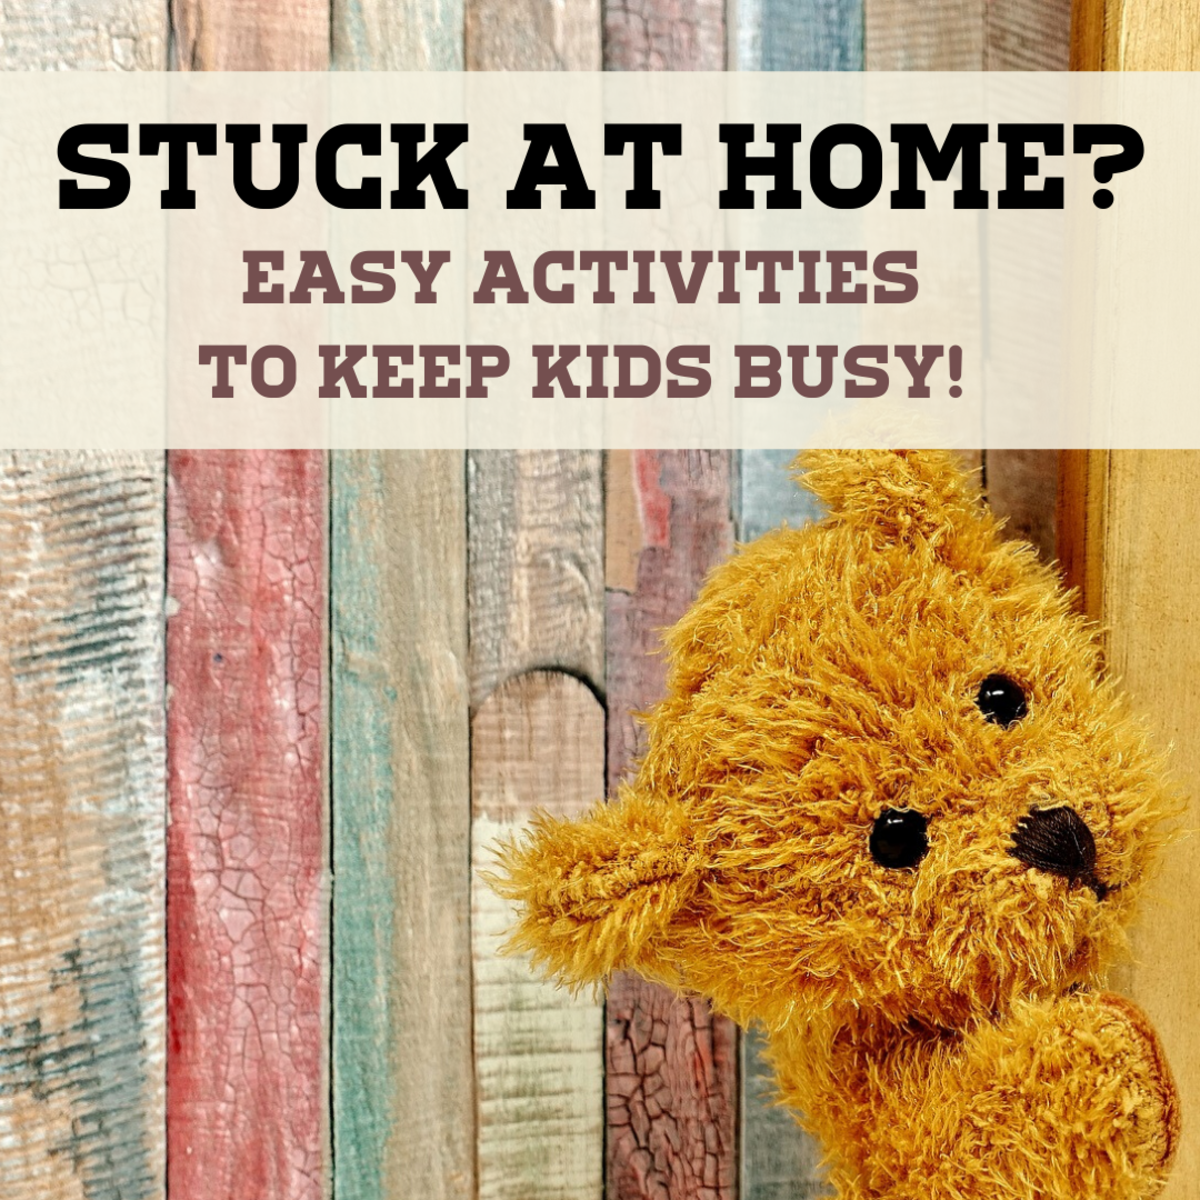 Get a bunch of ideas for easy, inexpensive activities you can do around the house when your kids are stuck at home due to social distancing or any other restriction. Playing stuffed animal hide and seek is just one idea!